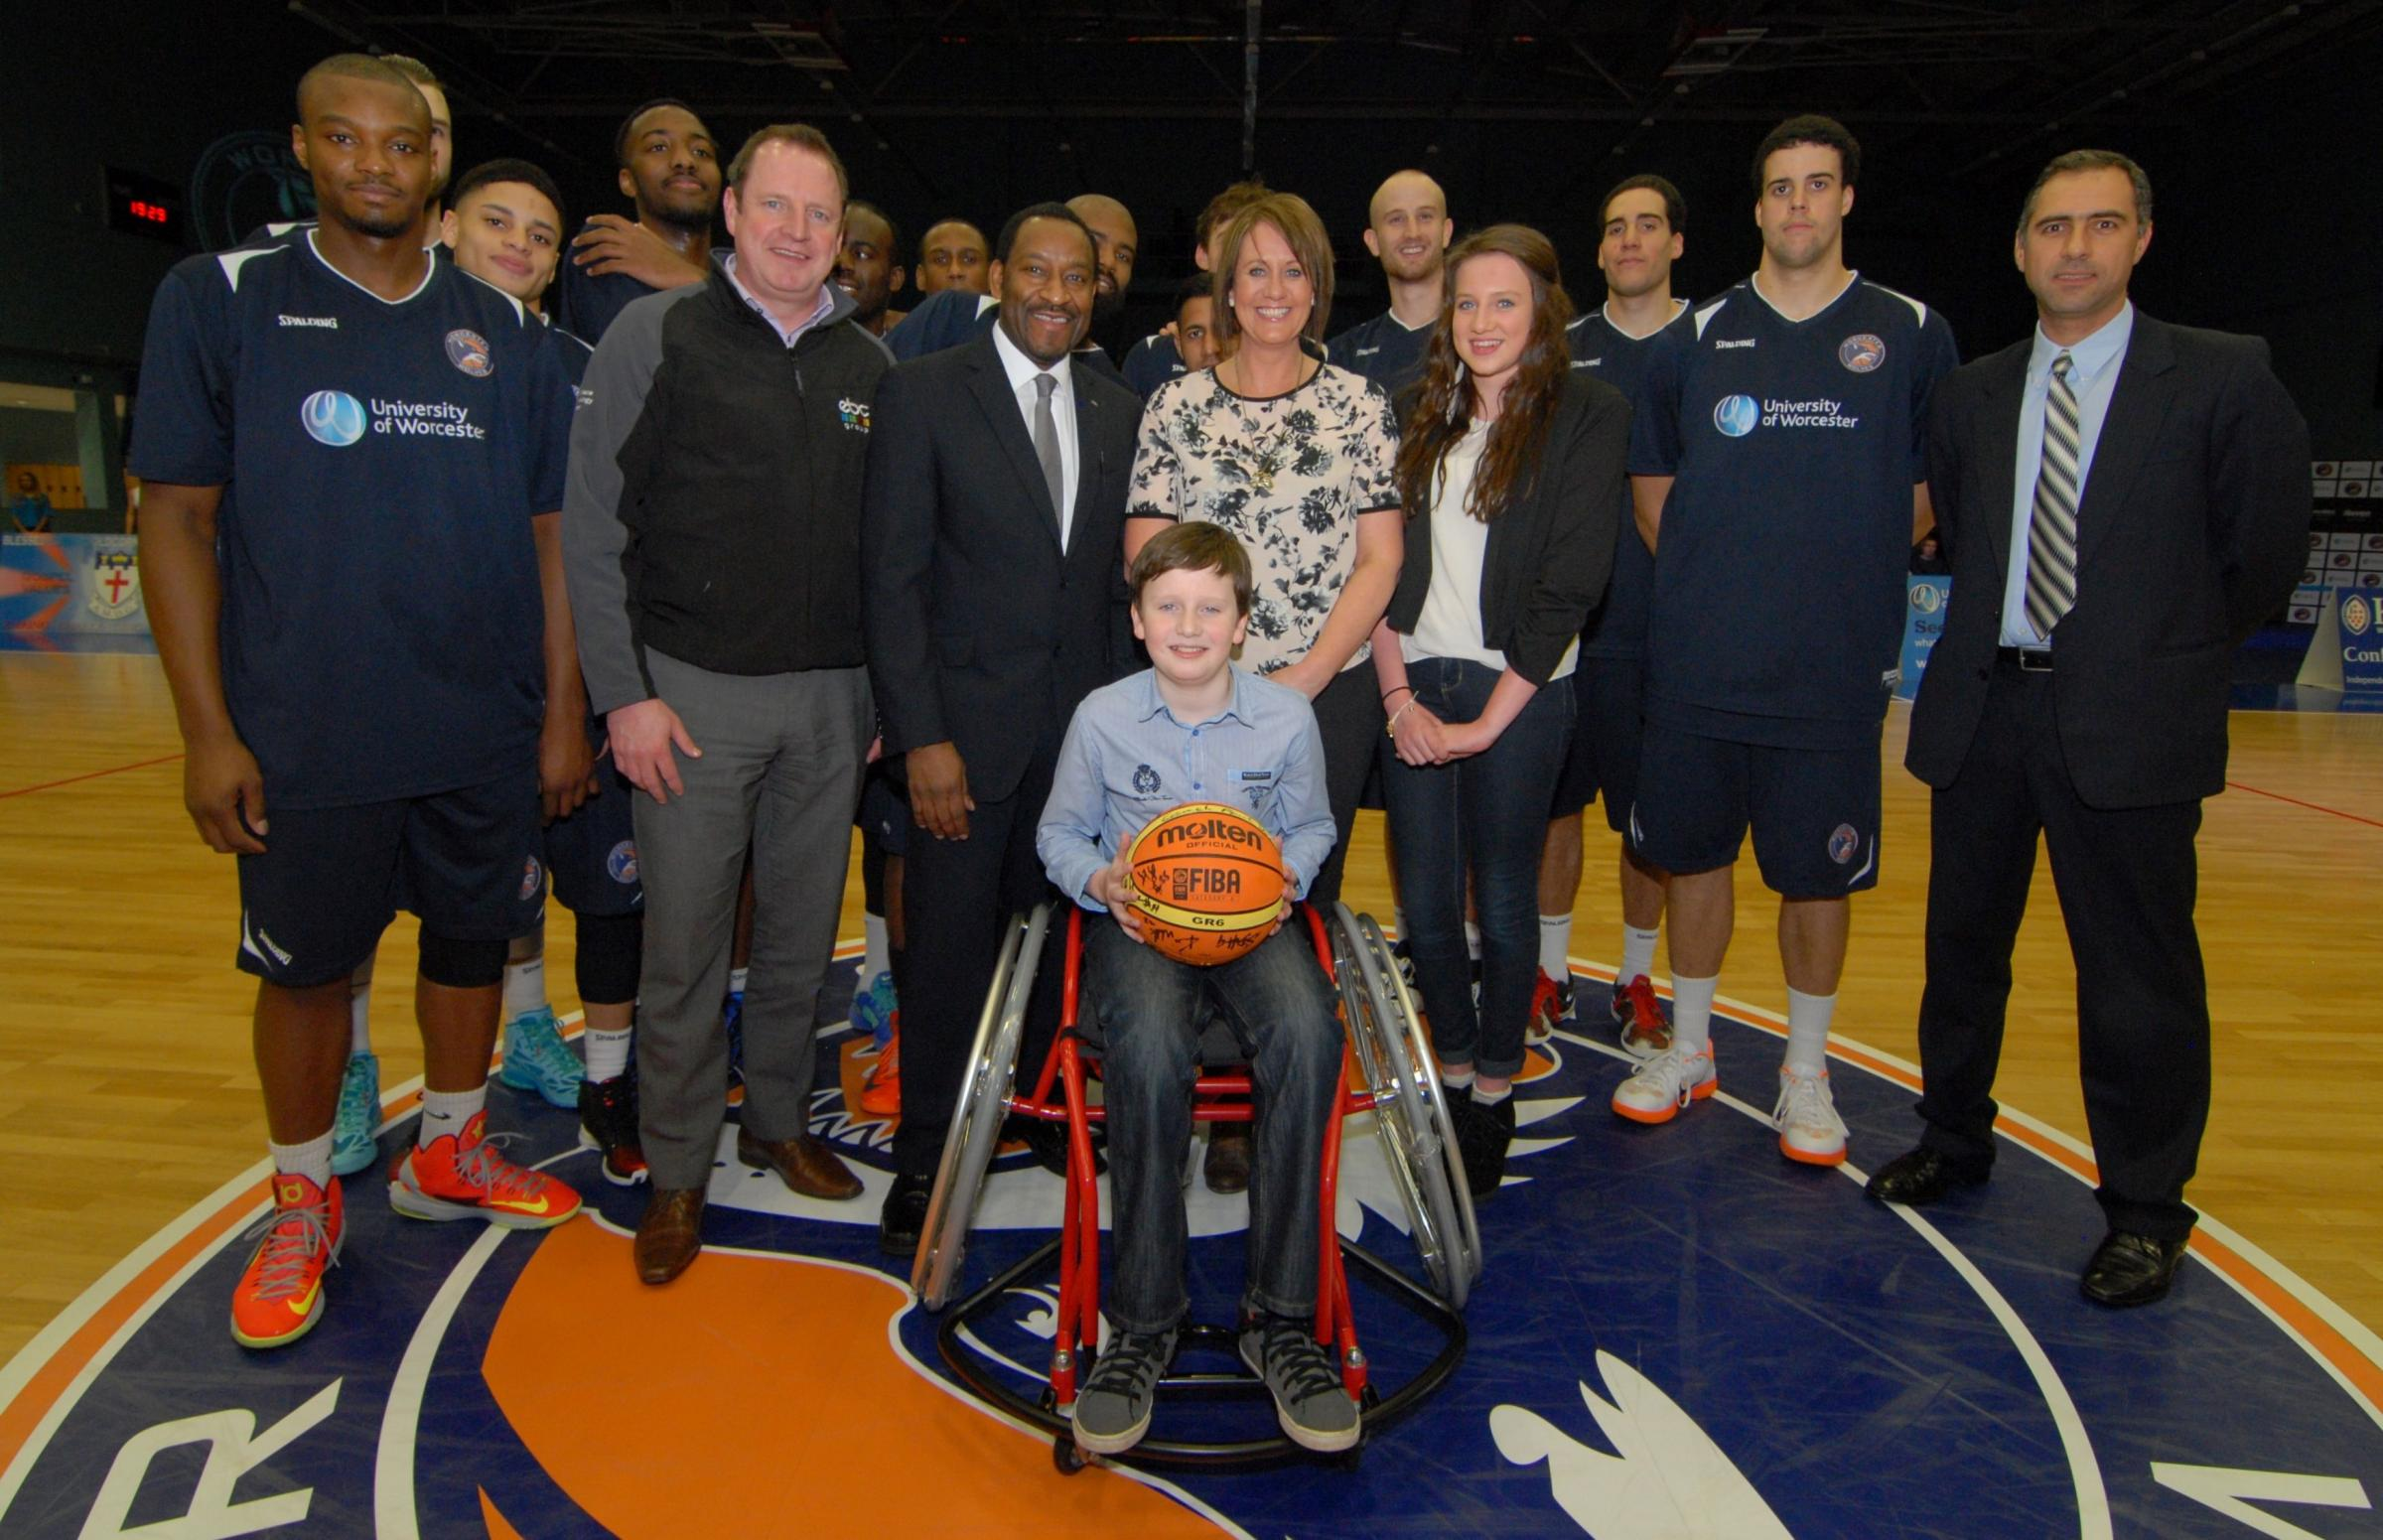 0914532301. 28/02/14. Henry Bowers aged 11 who has the rare degenerative condition Freidriech's Ataxia is presented with his Multisport wheelchair by Worcester Wolves head coach Paul James before the Wolves' British Basketball League match against